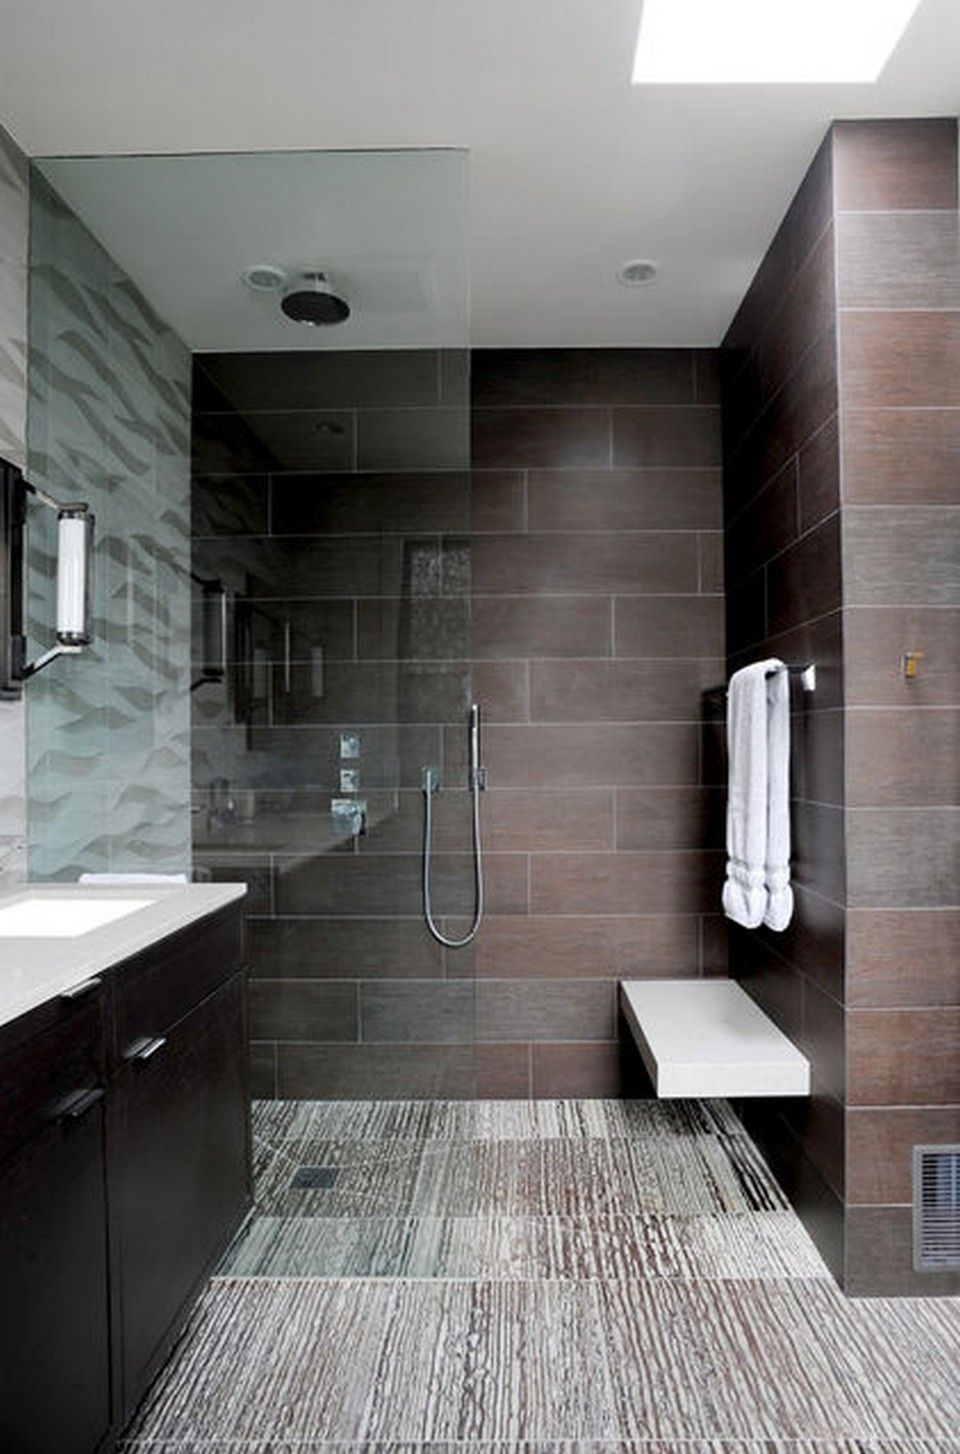 Accessible Bathroom Designs Adorable Cool 99 Cool Wheelchair Accessible Bathroom Design Httpwww Decorating Inspiration